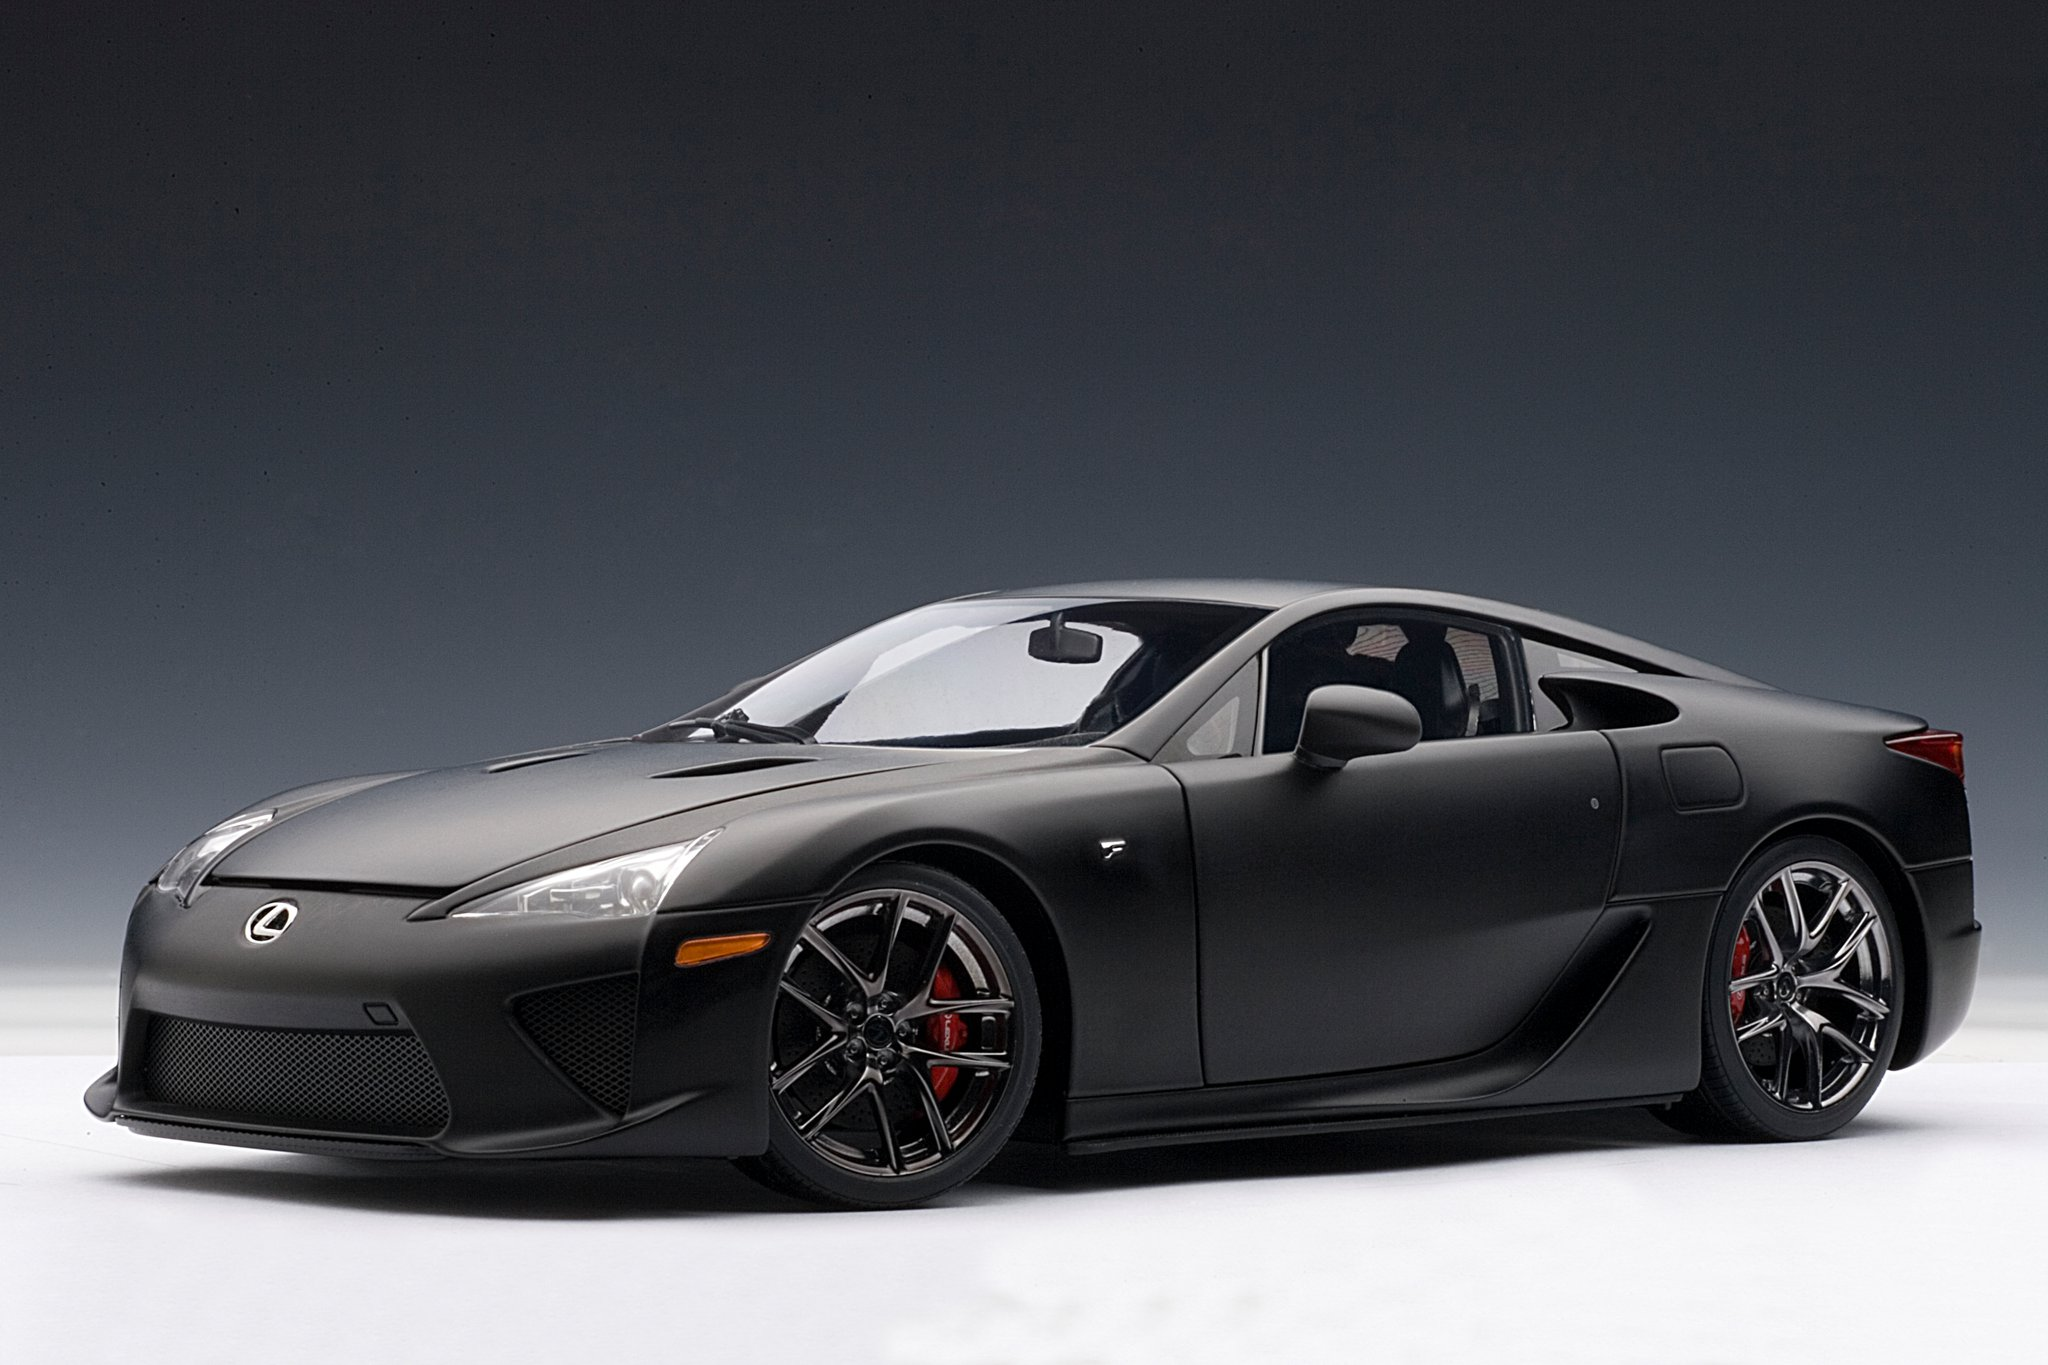 matte black lexus lfa die cast model by autoart lexus enthusiast. Black Bedroom Furniture Sets. Home Design Ideas